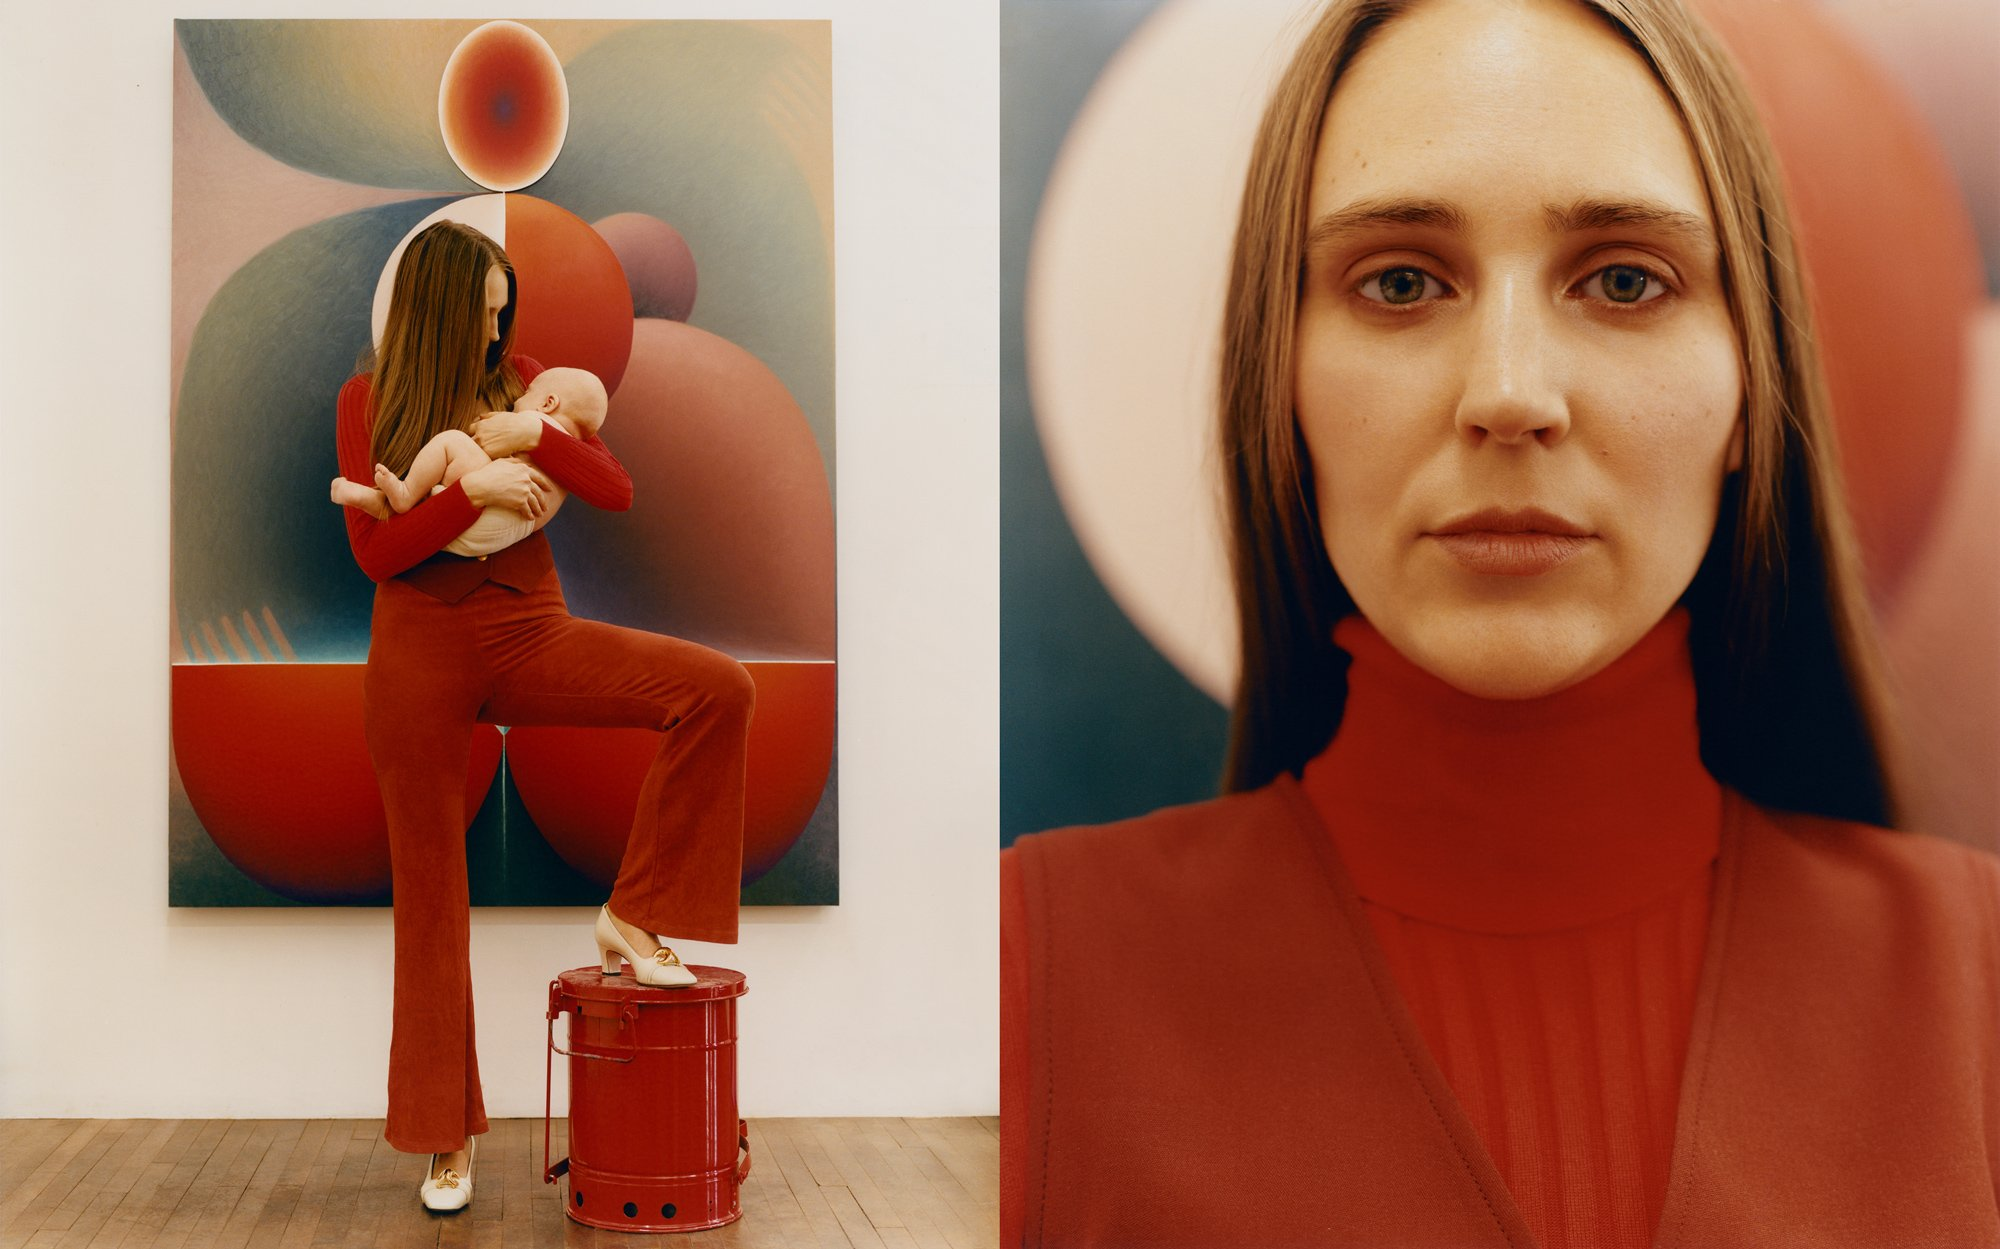 Loie Hollowell holding her baby in red Gucci suit for Romance Journal Issue 03. Publication design, art direction, print design by RoAndCo. RoAndCo partnership with Gucci